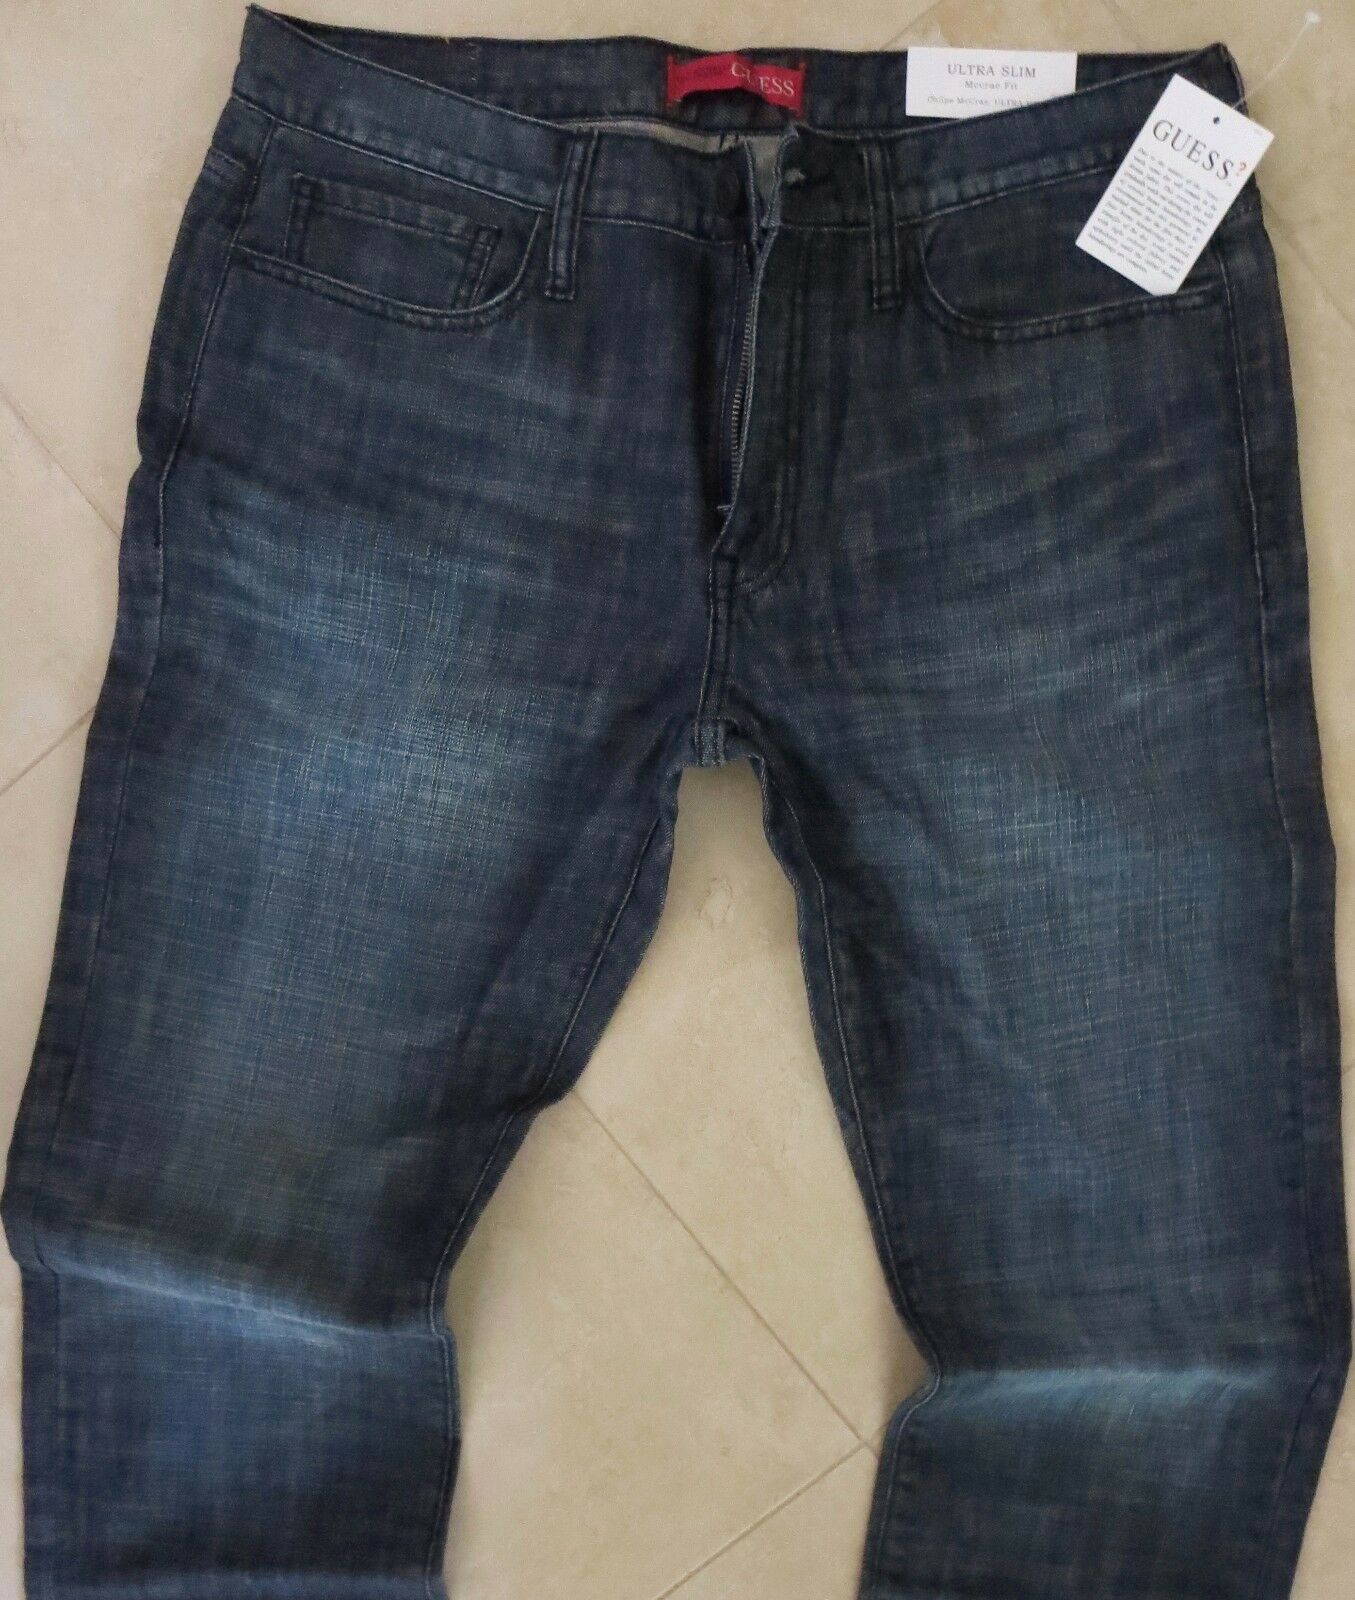 Guess Slim Straight Leg Jeans Men Size 29 X 30 Ultra Slim Dark Distressed Wash